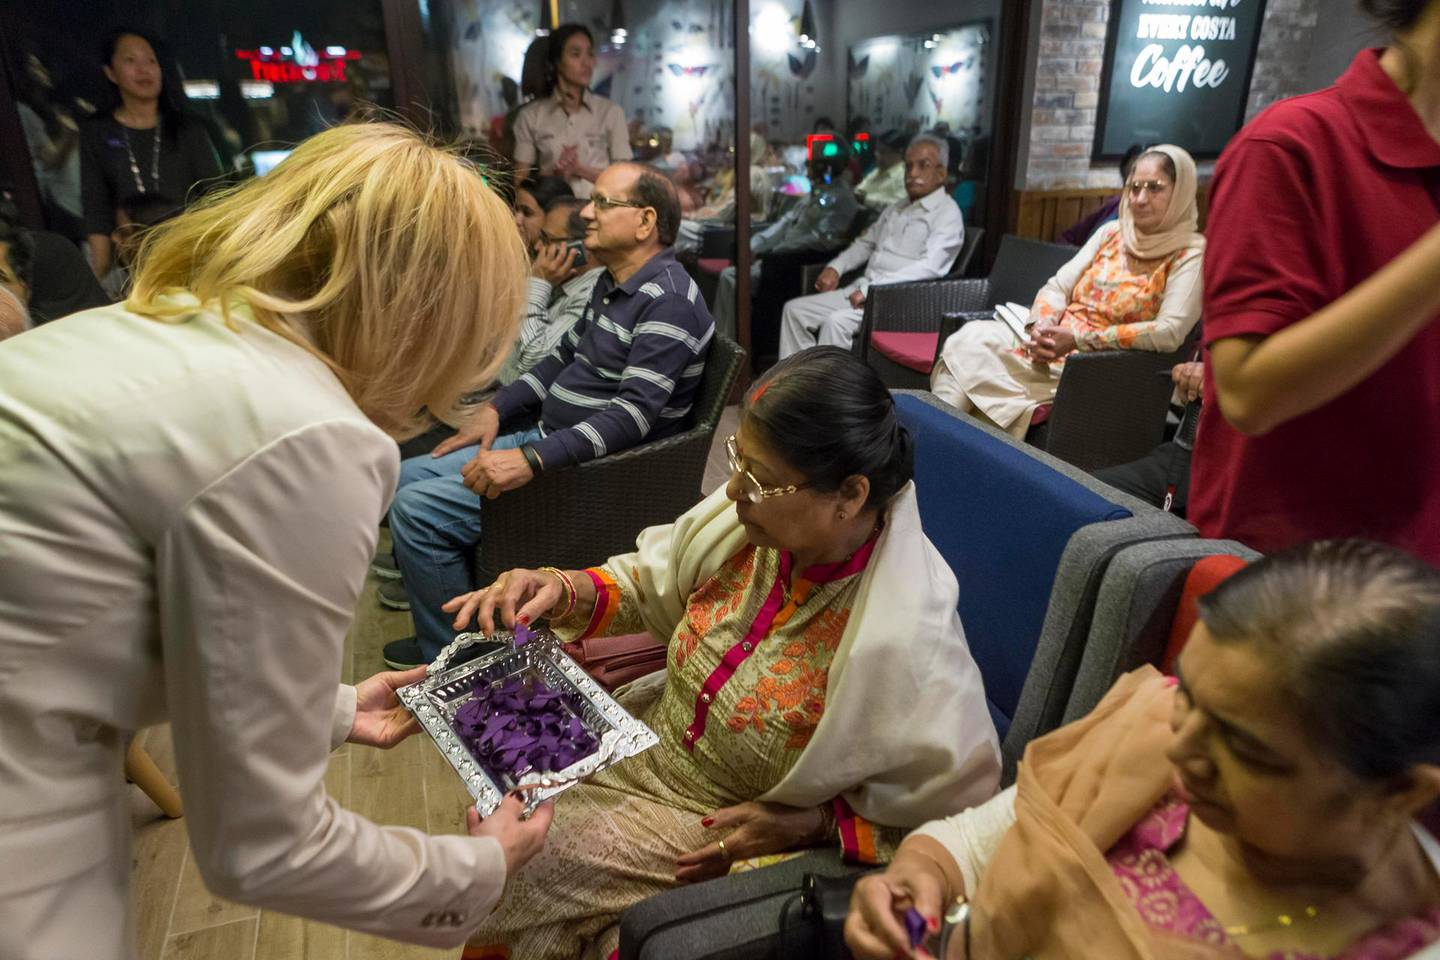 DUBAI, UNITED ARAB EMIRATES, 07 MARCH 2017. A group of elderly people from the Golden Age group met up at the new Costa Cafe on Jumeirah Beach Road as part of a new initiative titled Alzheimer's Café. Alzheimer's Cafe plan to host monthly meetings focusing on Alzheimer's support and brain health matters. Birgit Ertl, Founder of the International Curriculum for Language and Creative Arts hands out purple Alzheimer's ribbons to the participants at the meeting. (Photo: Antonie Robertson/The National) ID: 52004. Journalist: Amna Shahid. Section: National. *** Local Caption ***  AR_0703_Alzheimers_Support-01.JPG